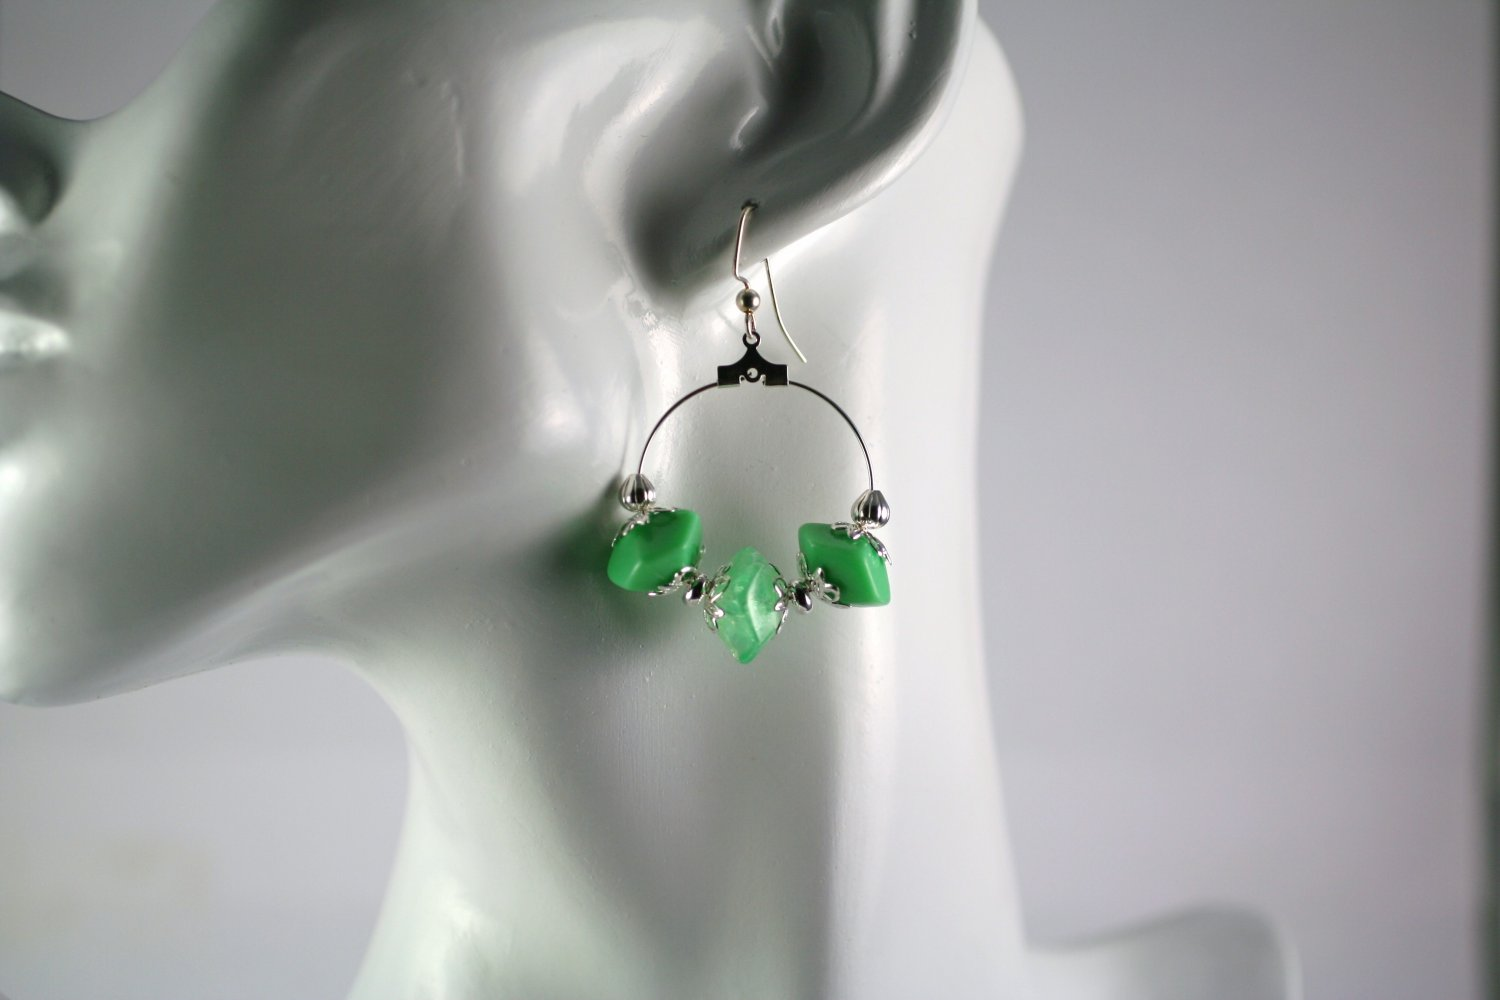 Silver Hoop Earrings with Green Vintage Beads 1 in.  Handcrafted Jewelry